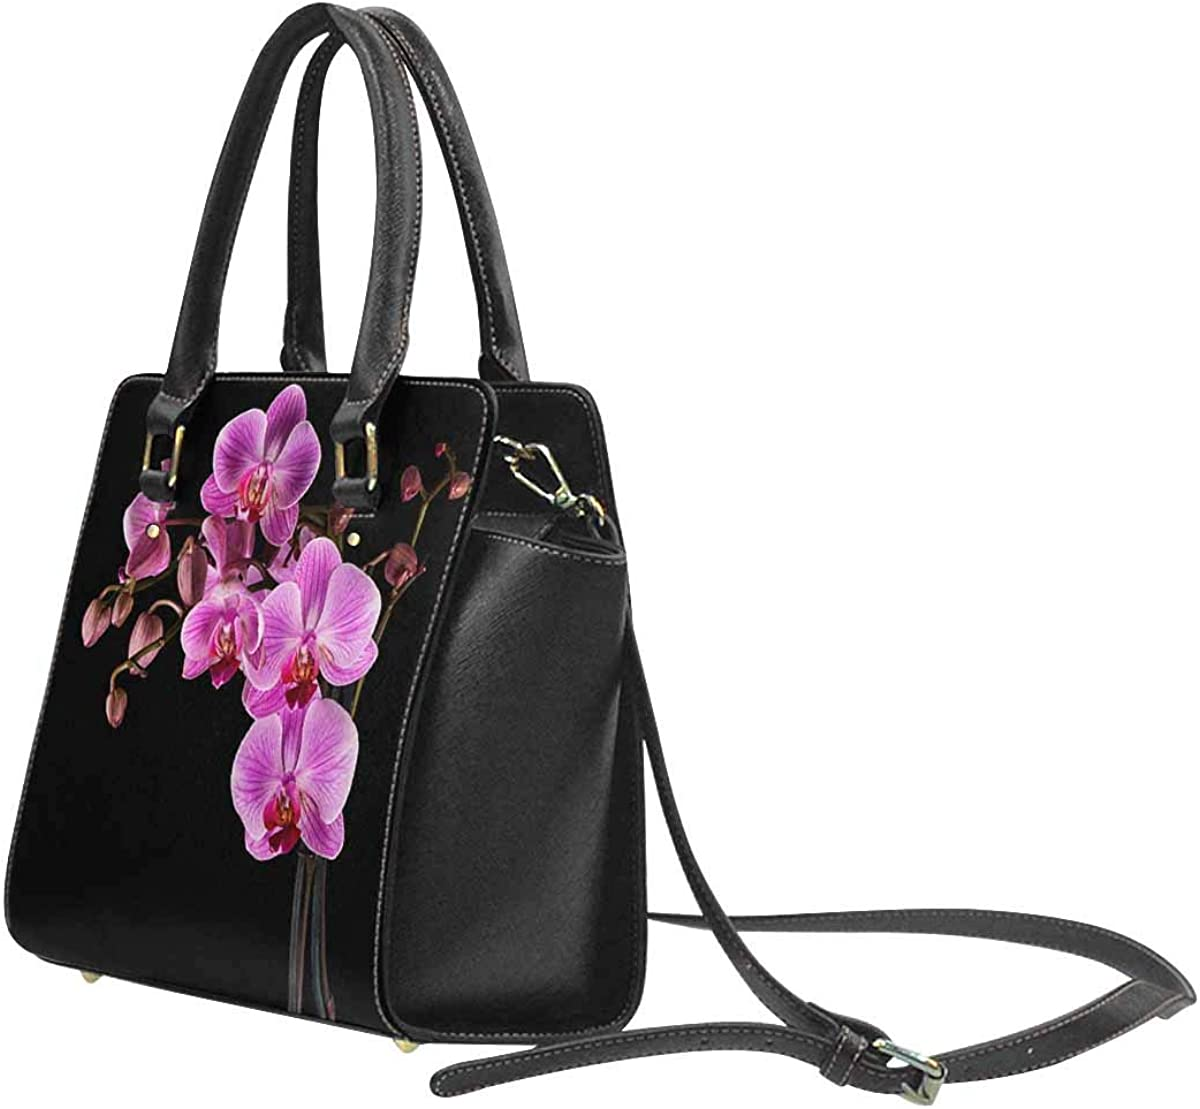 INTERESTPRINT Pink Cultivated Orchid Top Handle Satchel Purse for Woman Tote Shoulder Bag